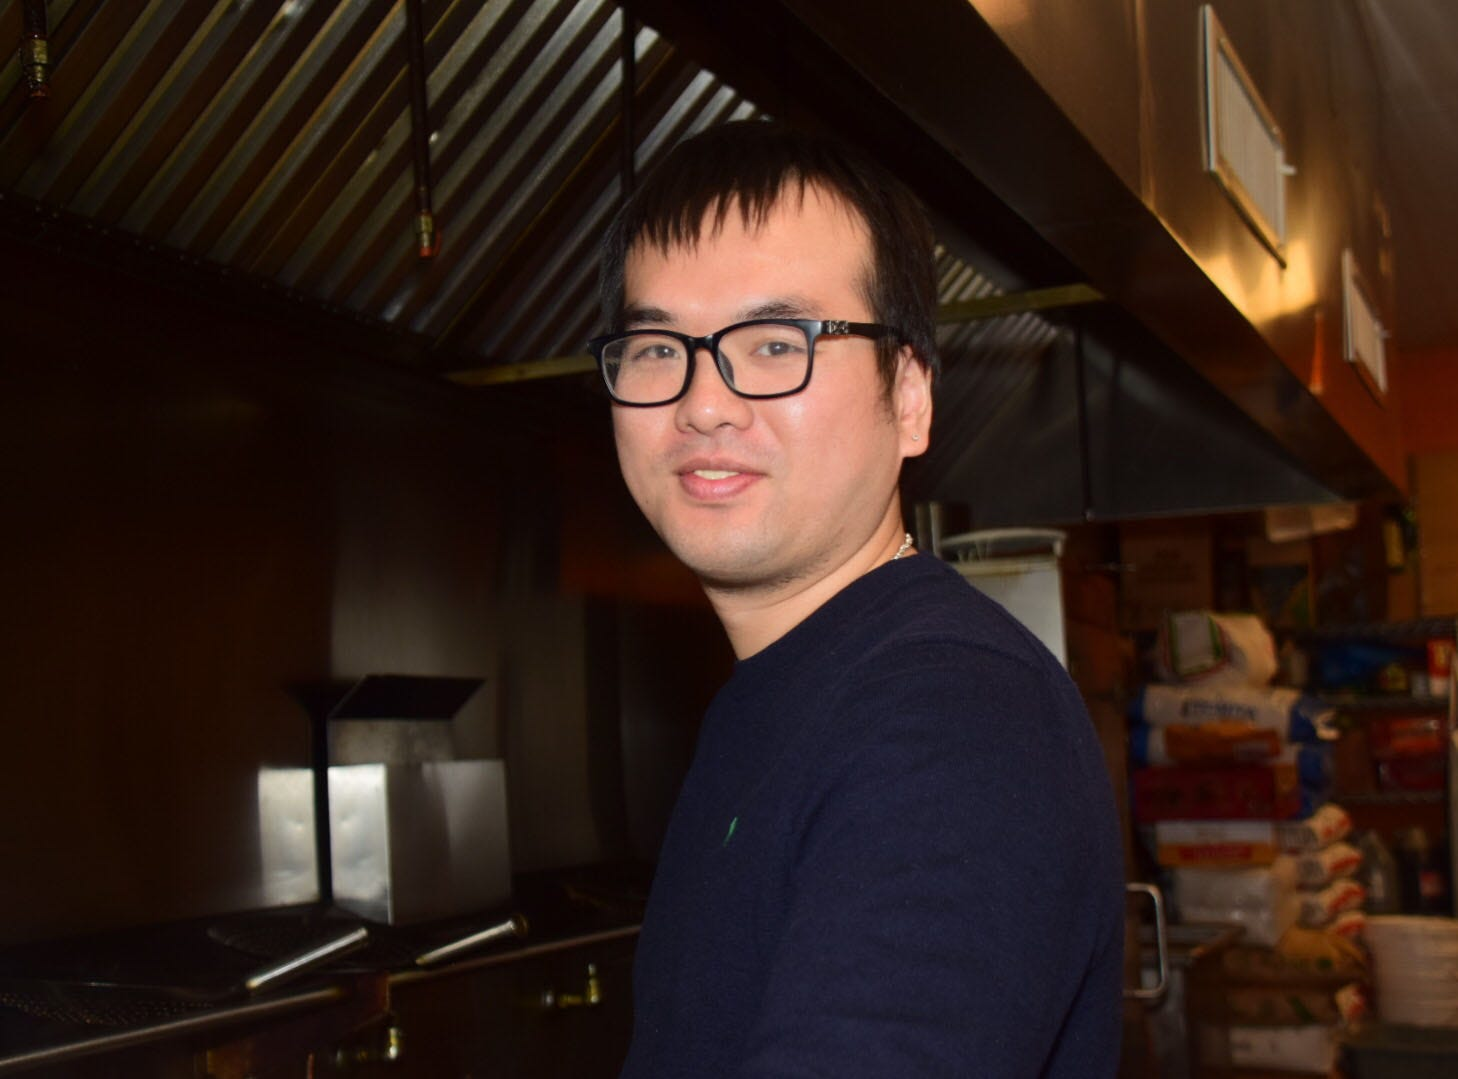 Chef Etan Dong cooks up Americanized Asian fare at Chef's Asian Cuisine Thursday, Jan. 24.